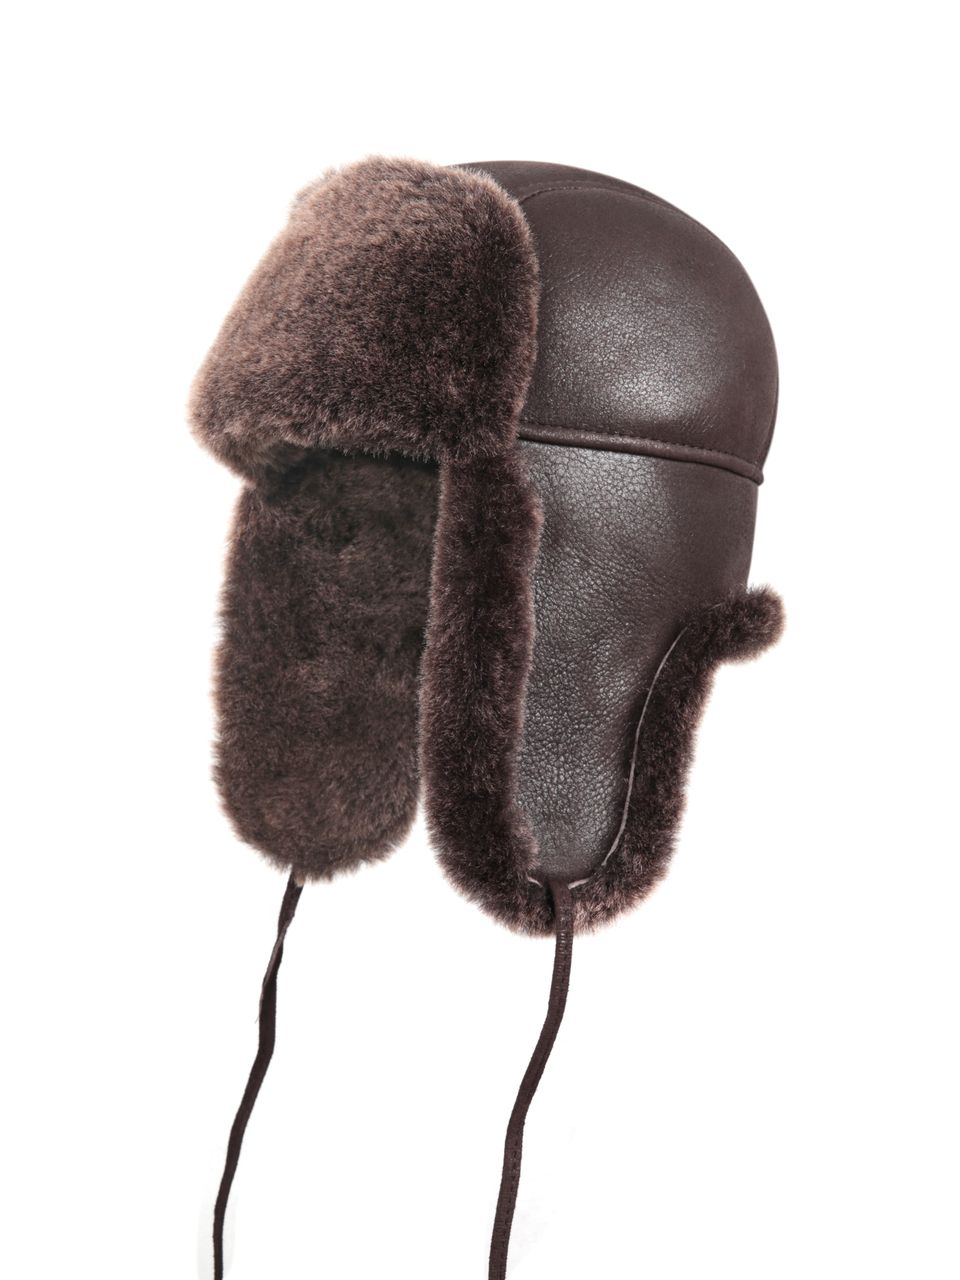 e354d1a172a9c Zavelio Shearling Sheepskin Aviator Winter Fur Hat - Brown